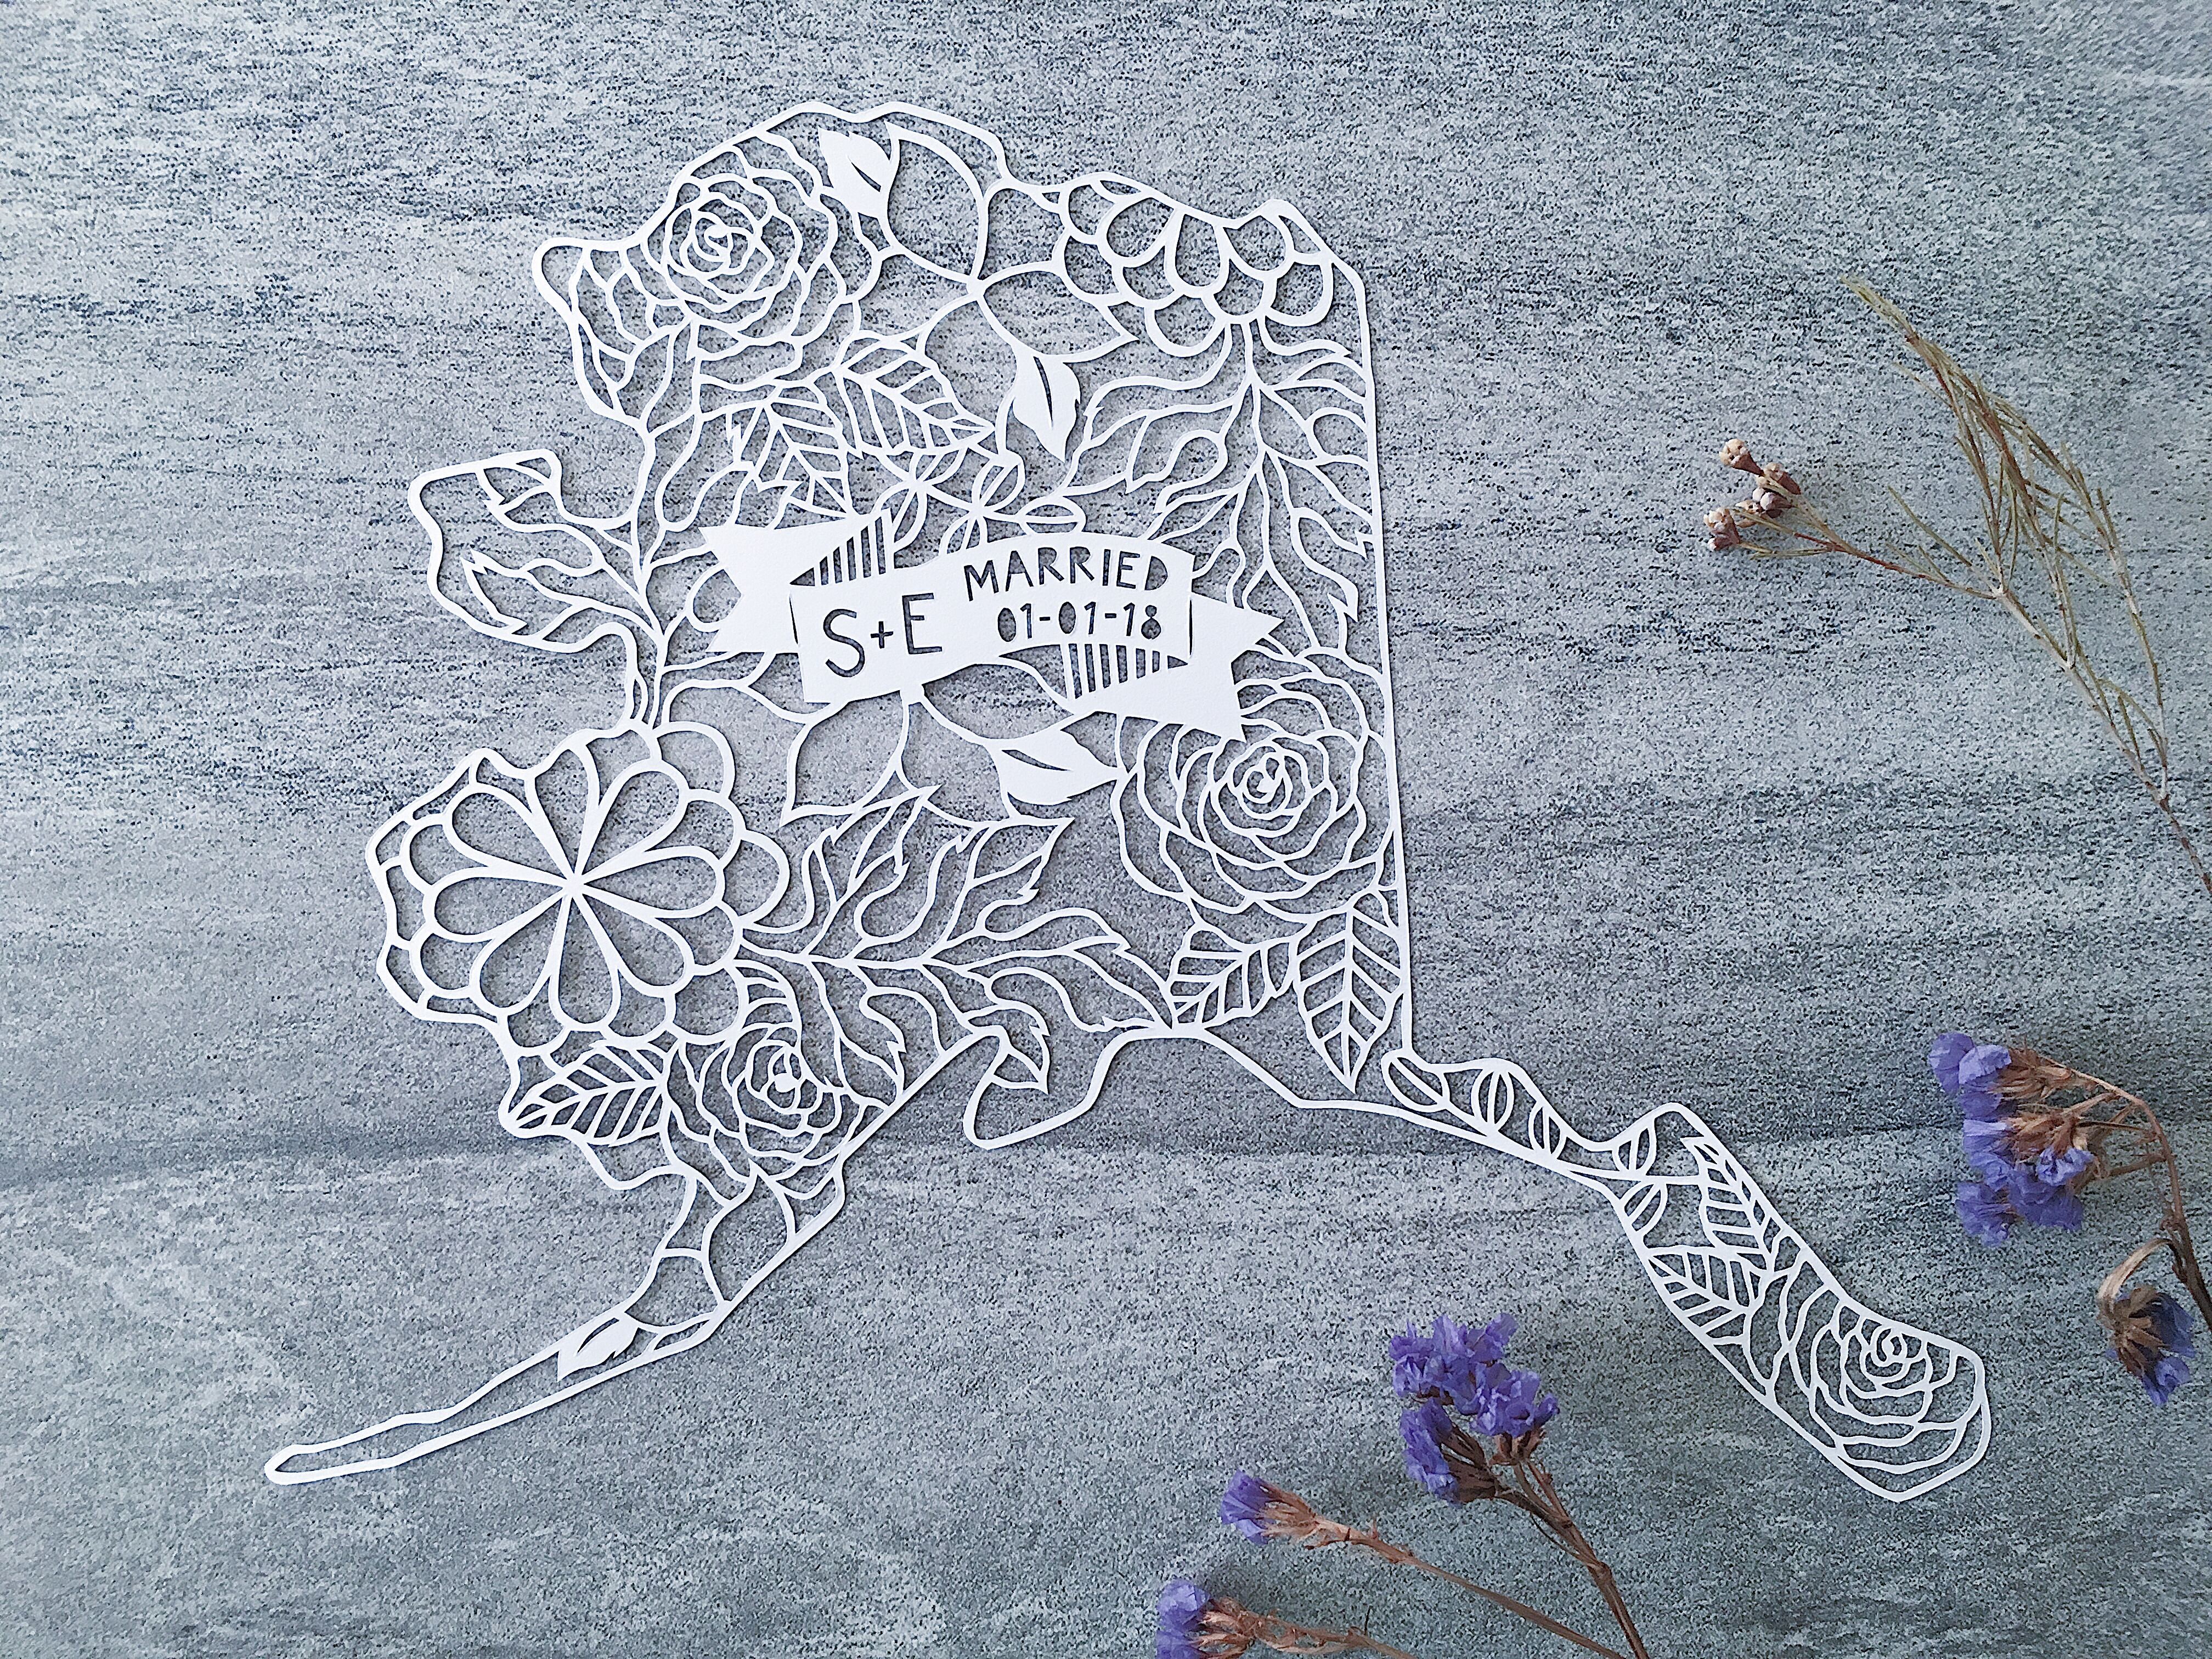 alaska-papercut-map-custom-art-papercutting-wedding-gift-handmade-scherenschnitte (9)